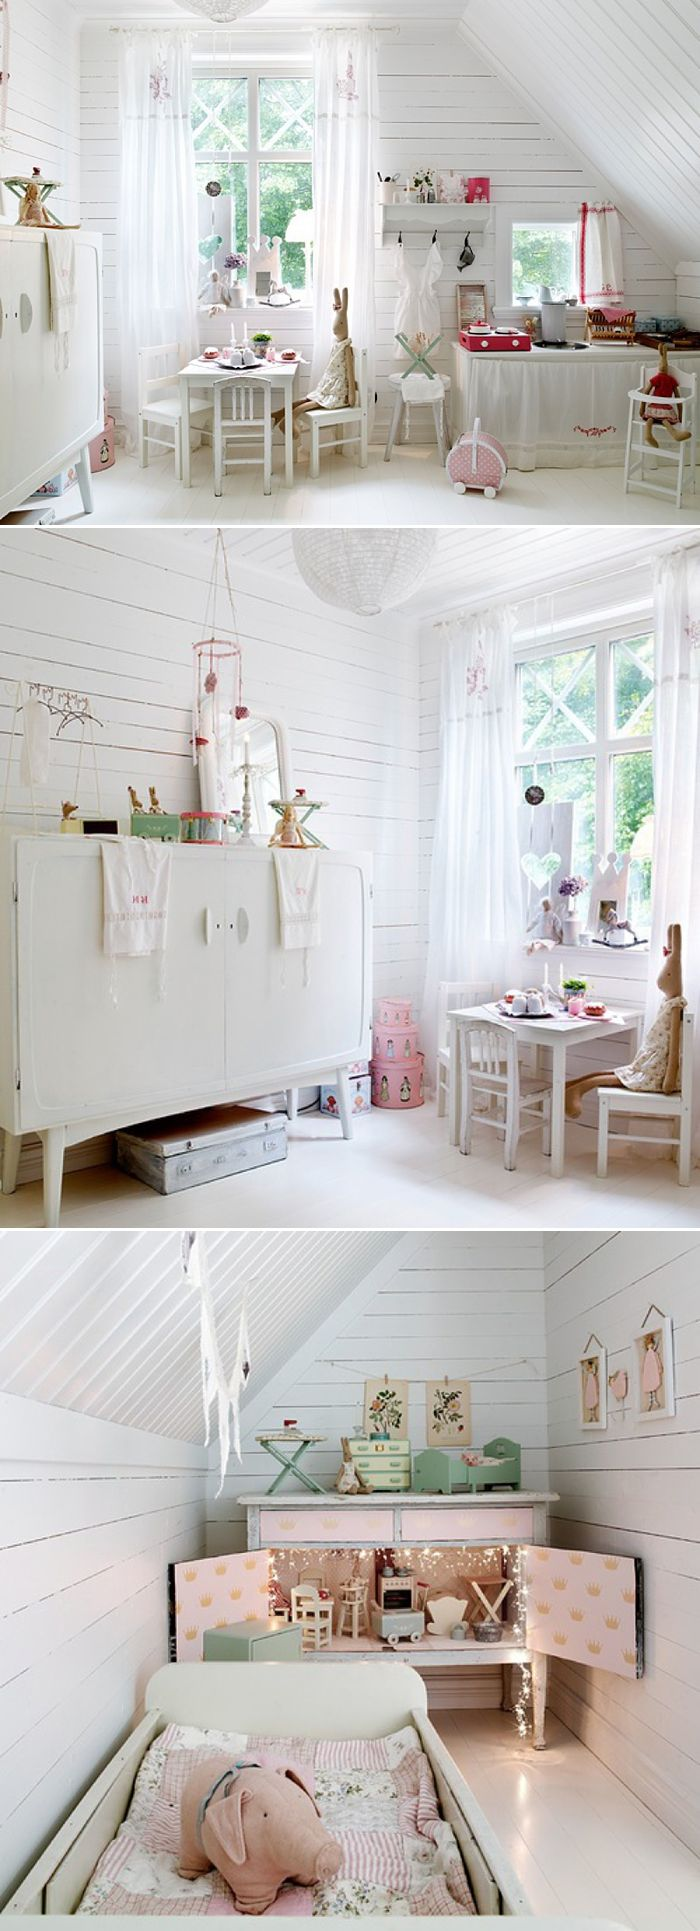 Girly and Whimsical Nursery @Sarah Chintomby Chintomby Chintomby Chintomby Nasafi Grayce